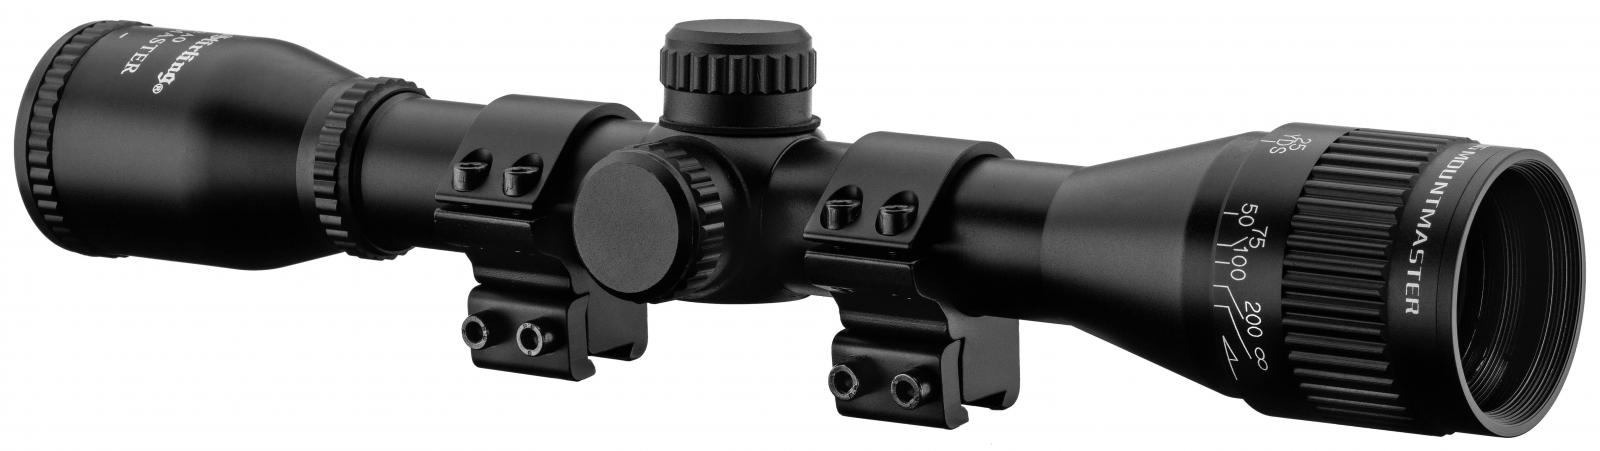 Lunette Nikko stirling 4x32 MountMaster + colliers